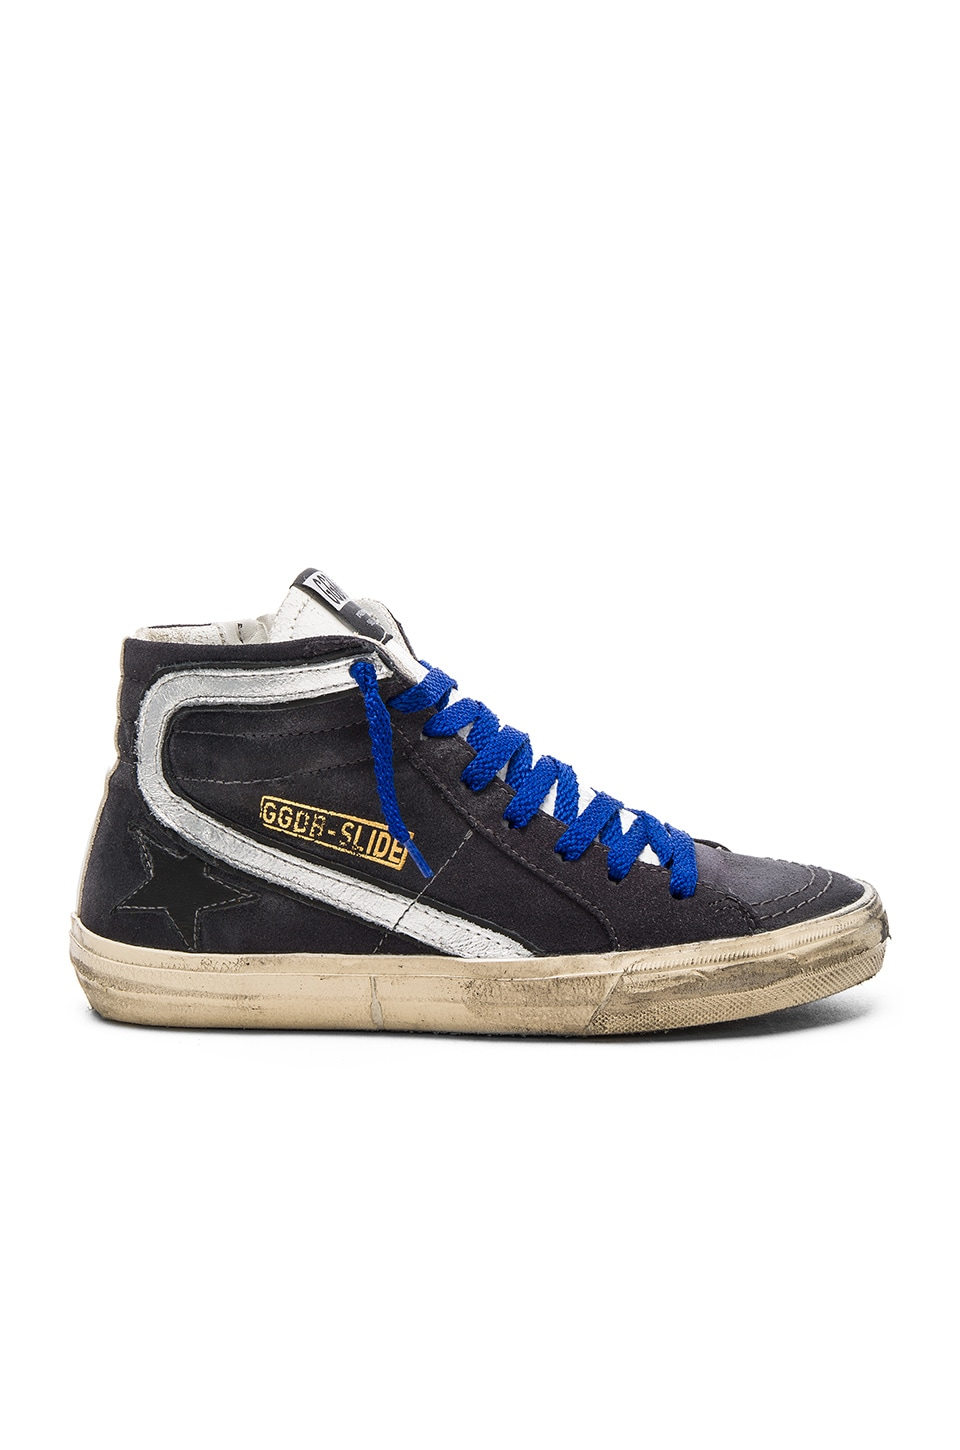 Golden Goose Slide Sneaker in Dark Grey Suede & Silver Star